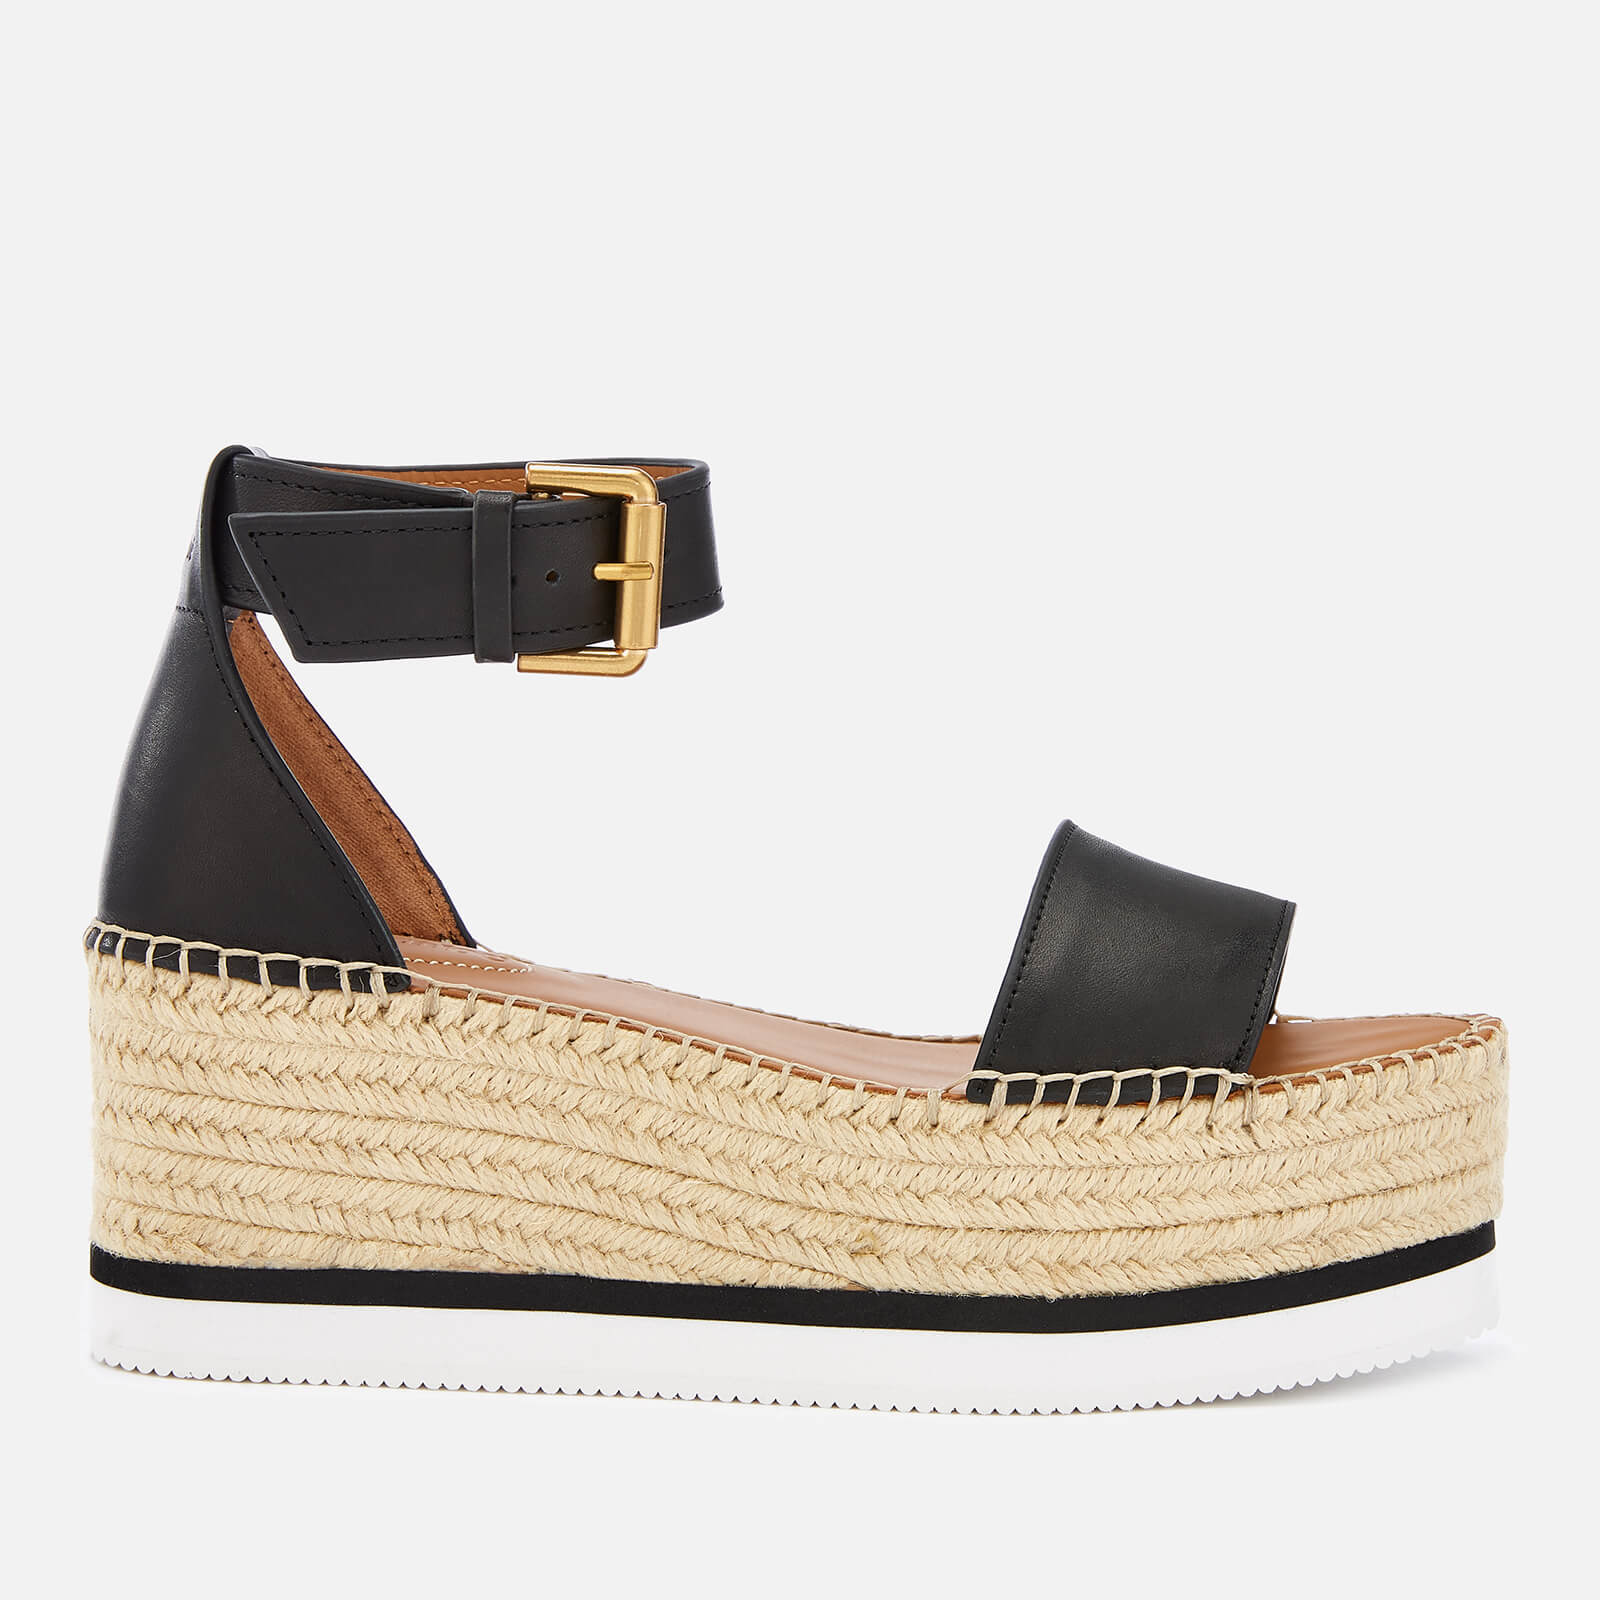 d357110c804 See By Chloé Women's Glyn Leather Espadrille Mid Wedge Sandals - Black